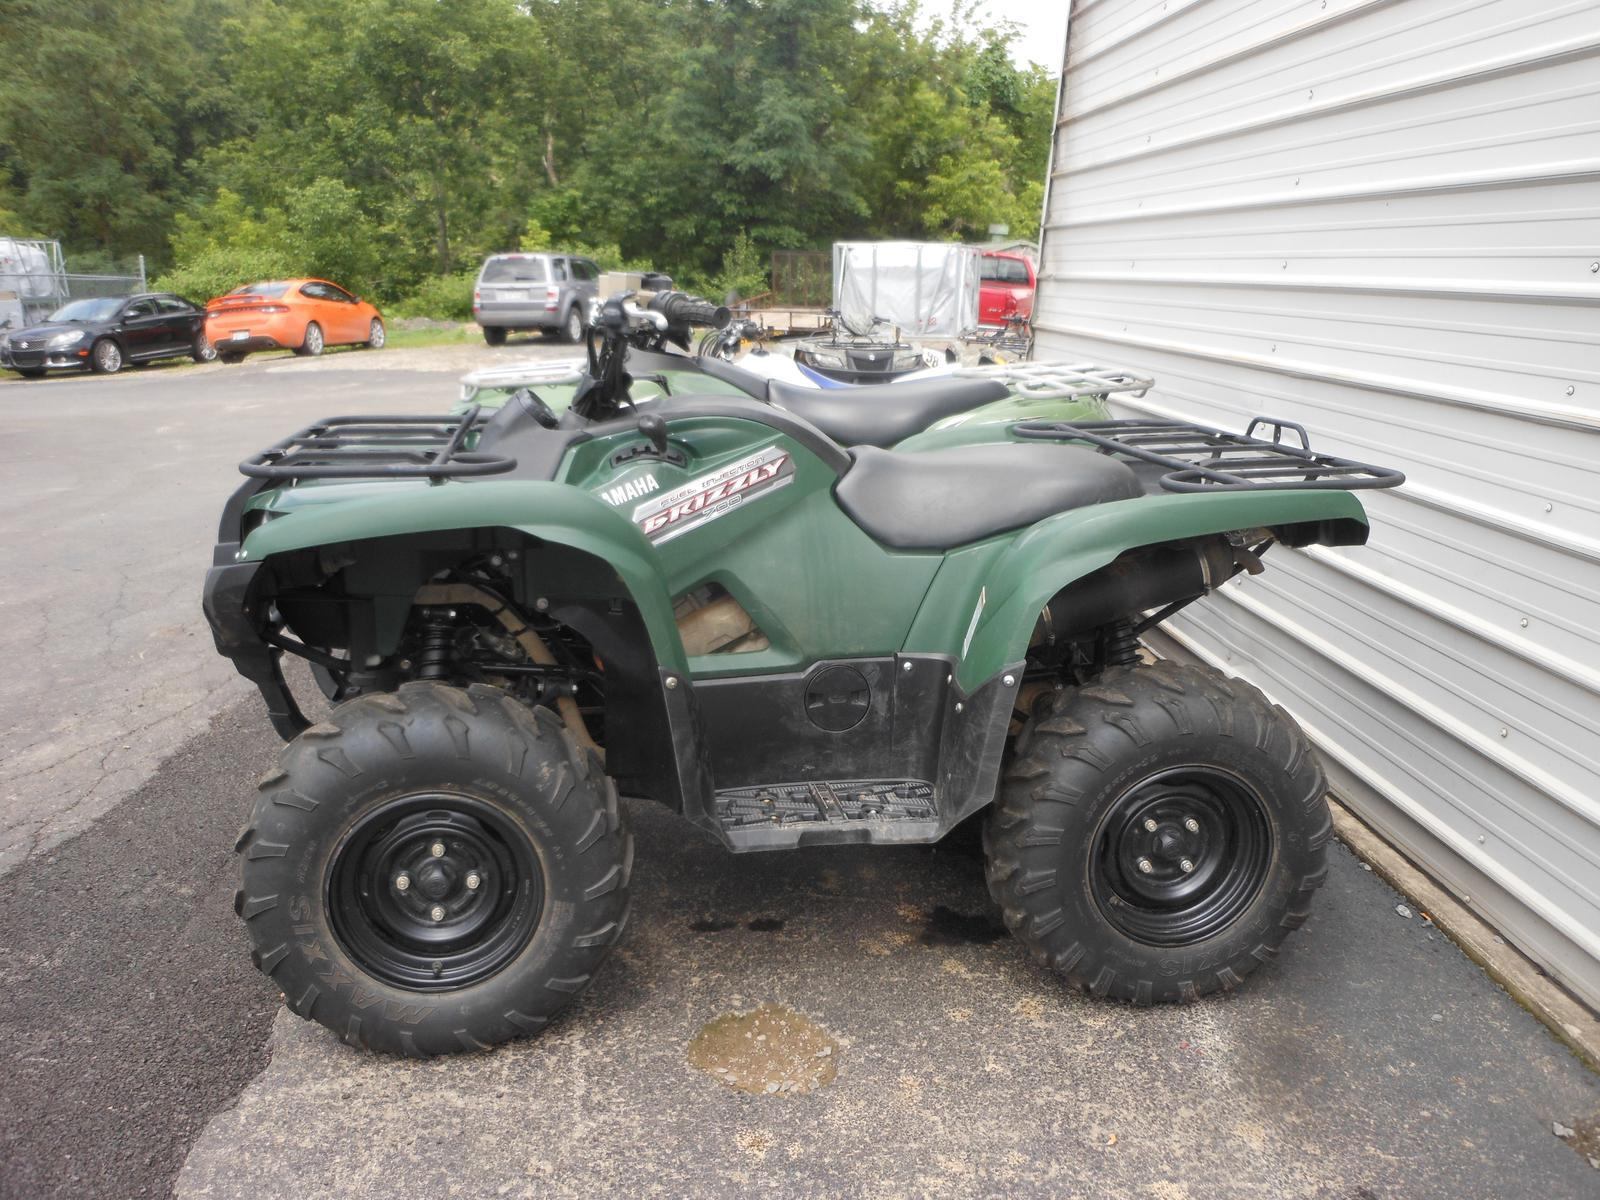 hight resolution of 2013 yamaha grizzly 700 fi auto 4x4 for sale in bridgeport wv leeson s import motors 844 533 7667